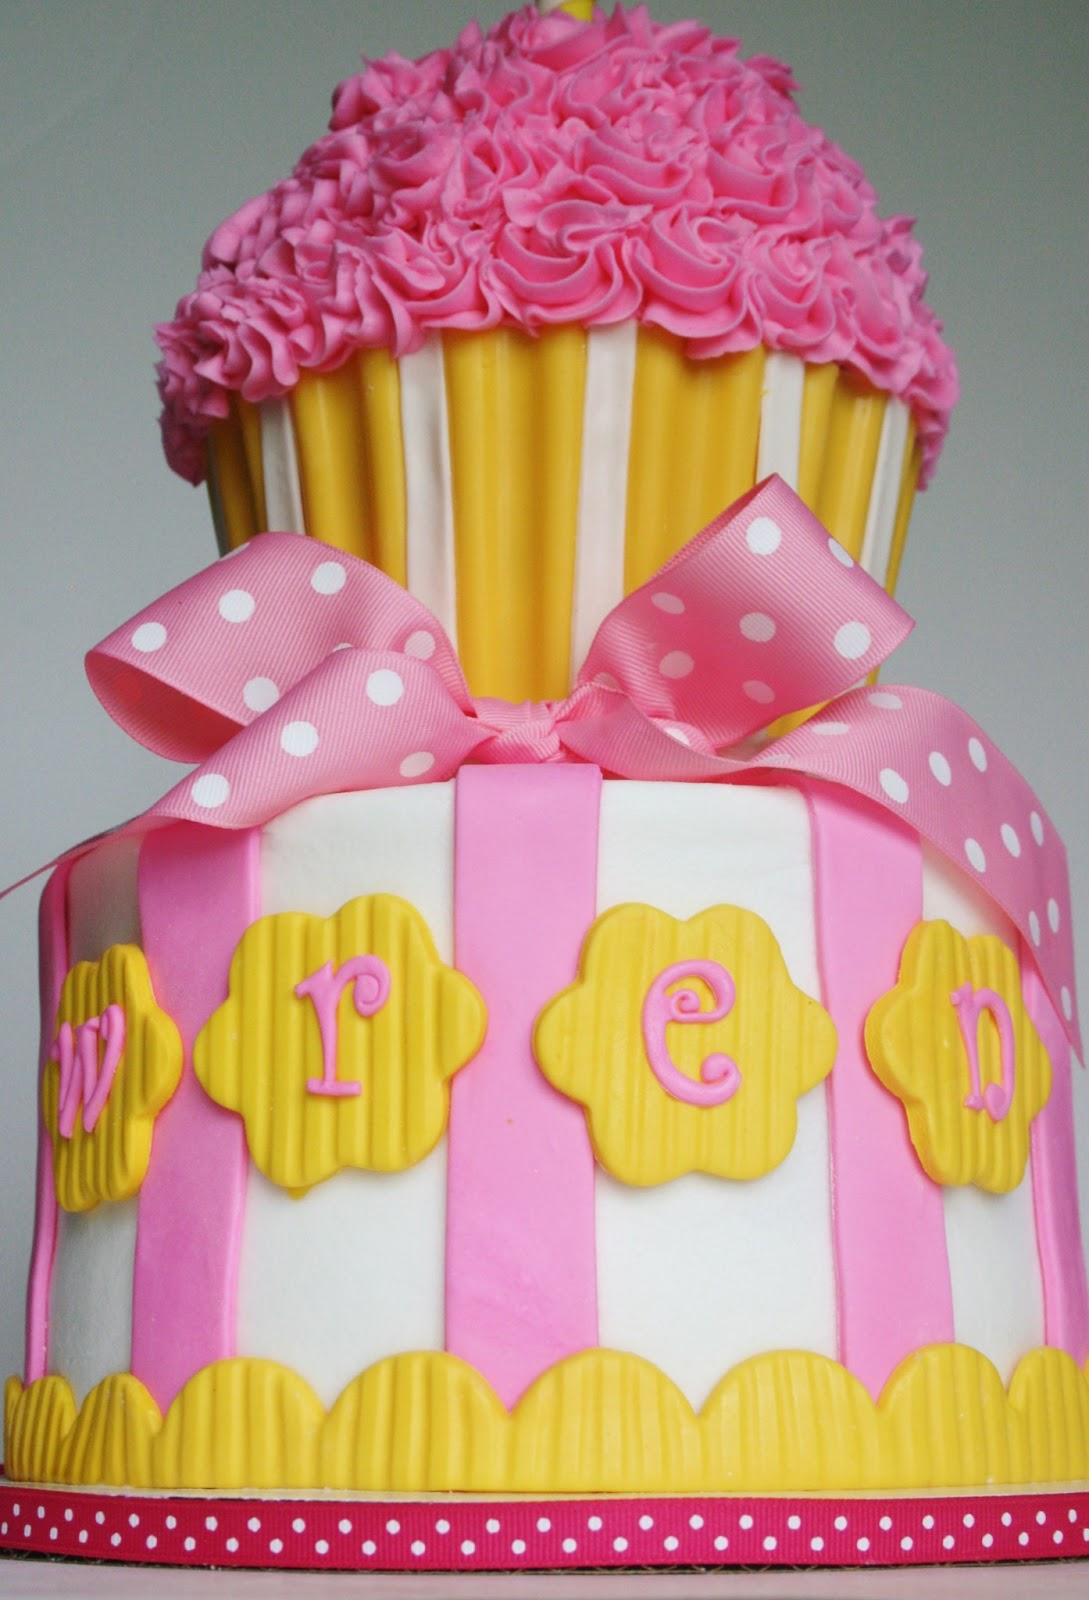 And Everything Sweet Pink And Yellow Cupcake Theme